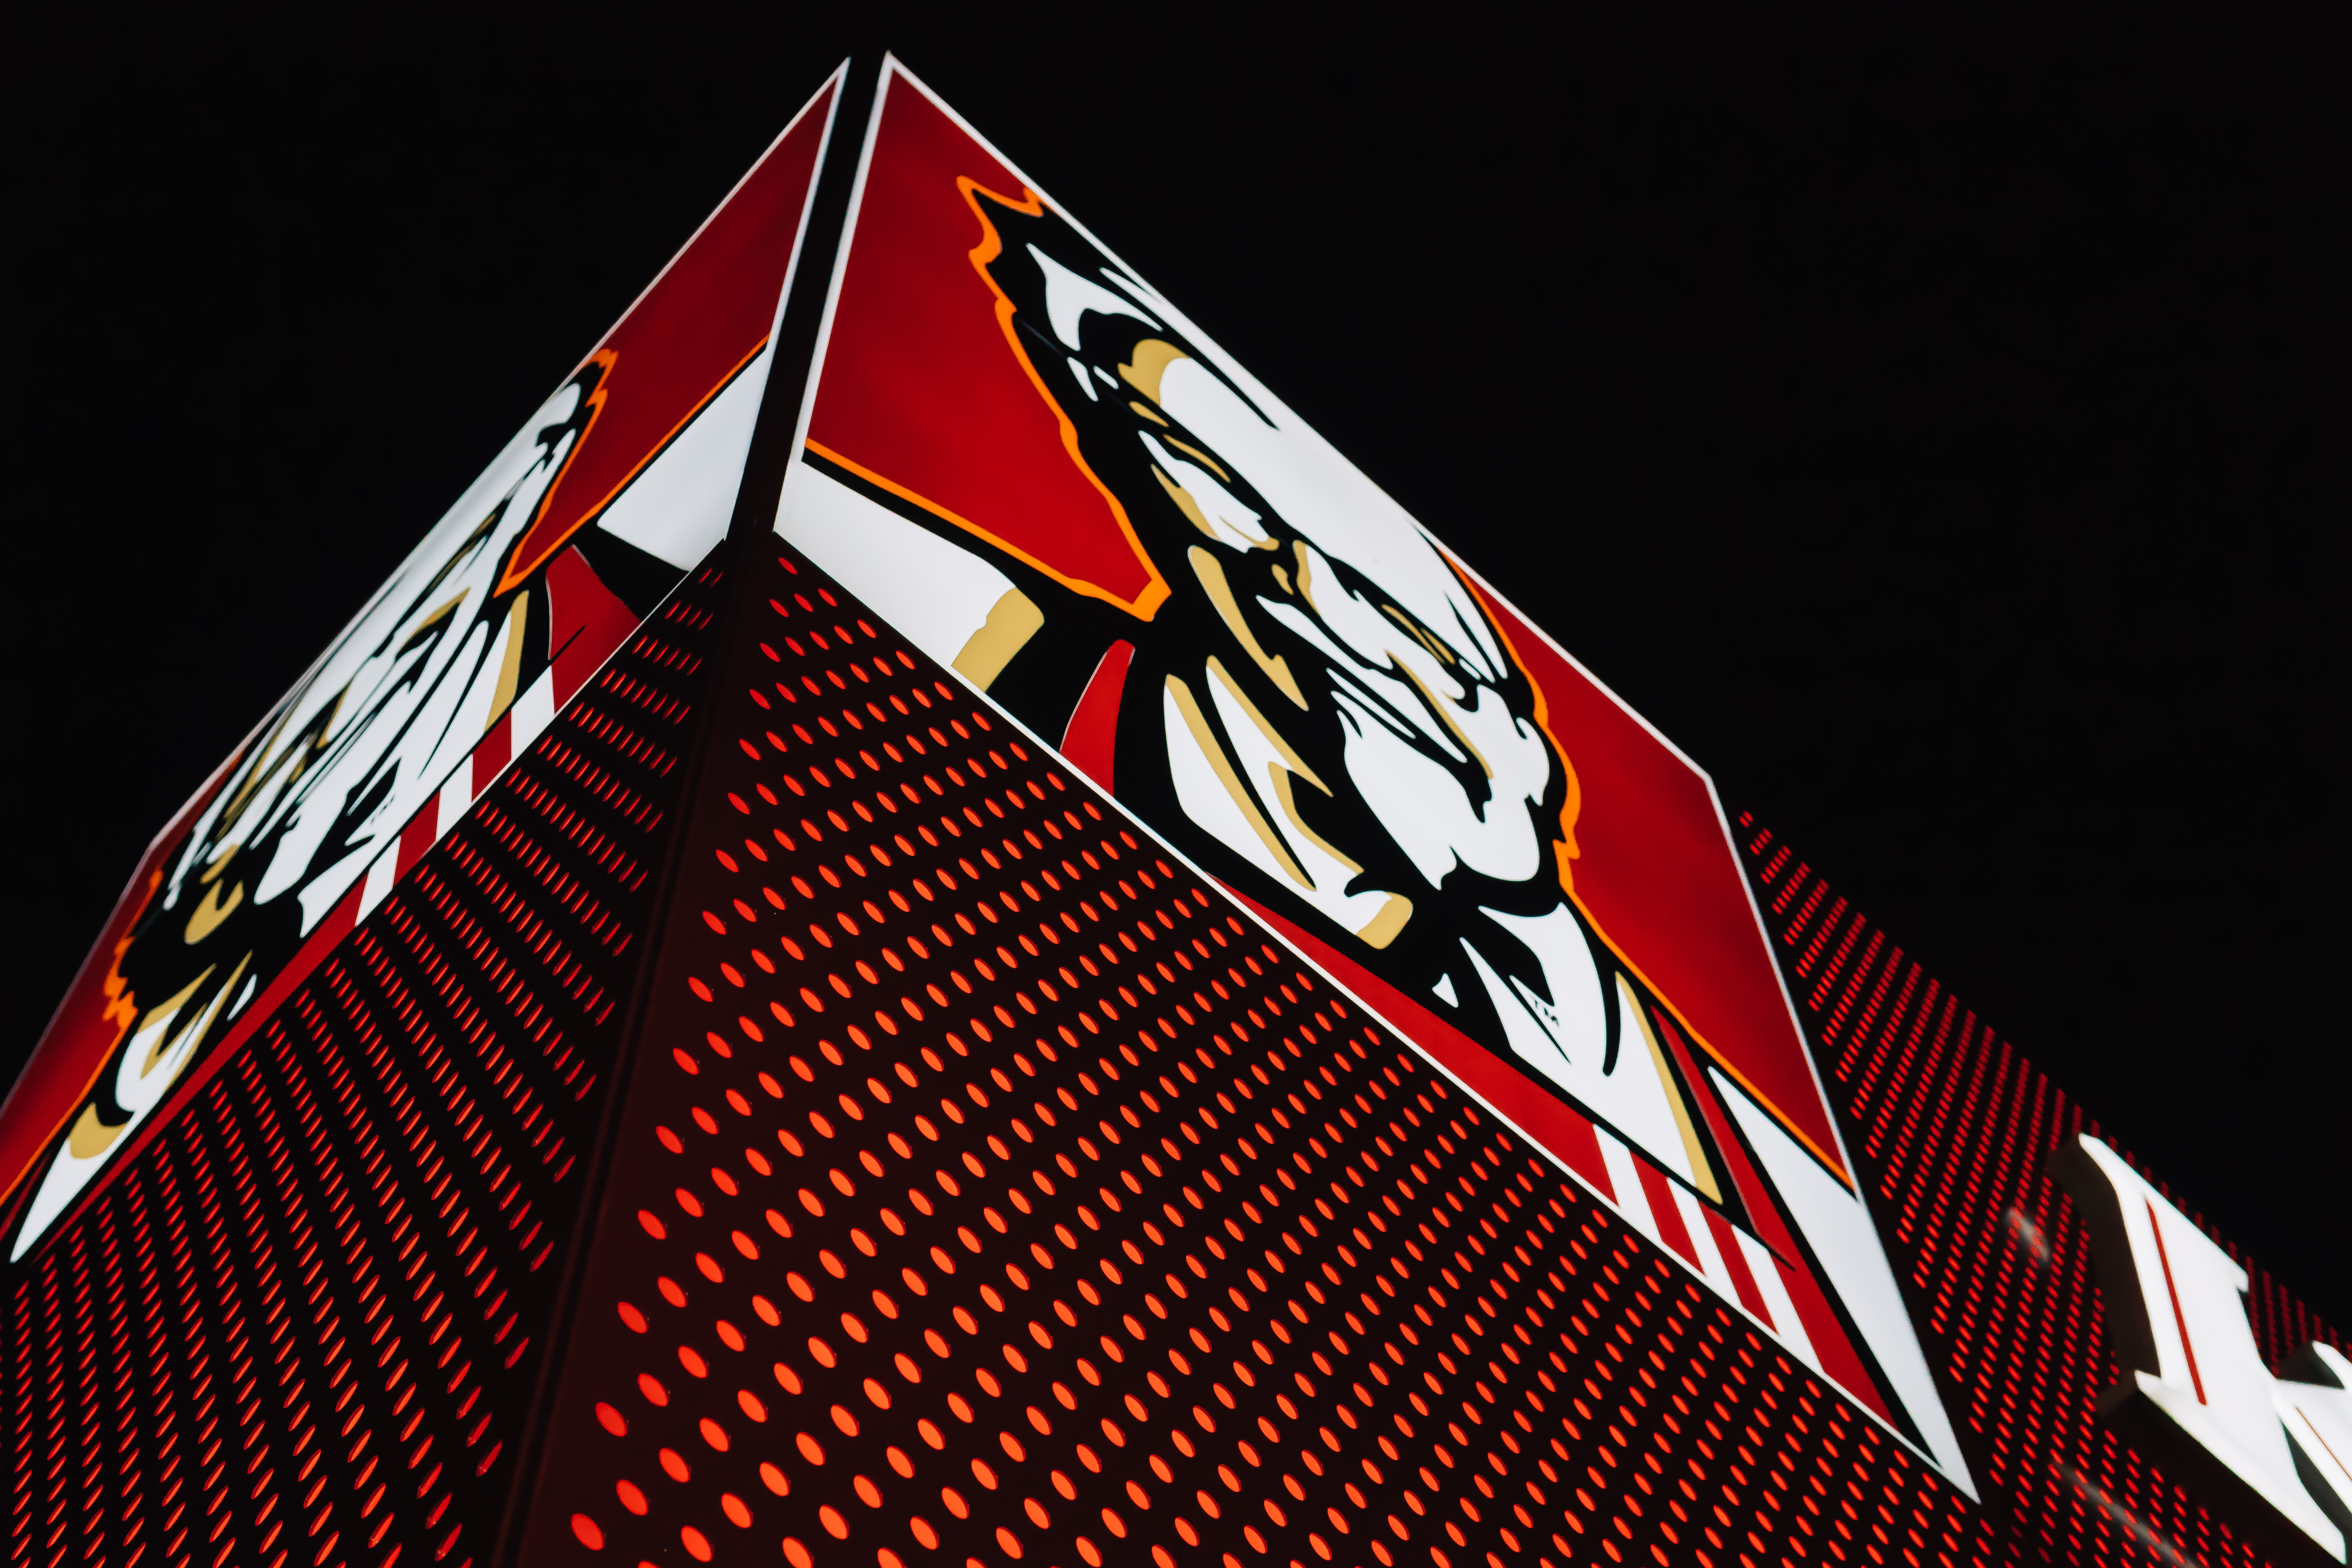 Supply Chain Scene, image of a lighted KFC sign on a corner building